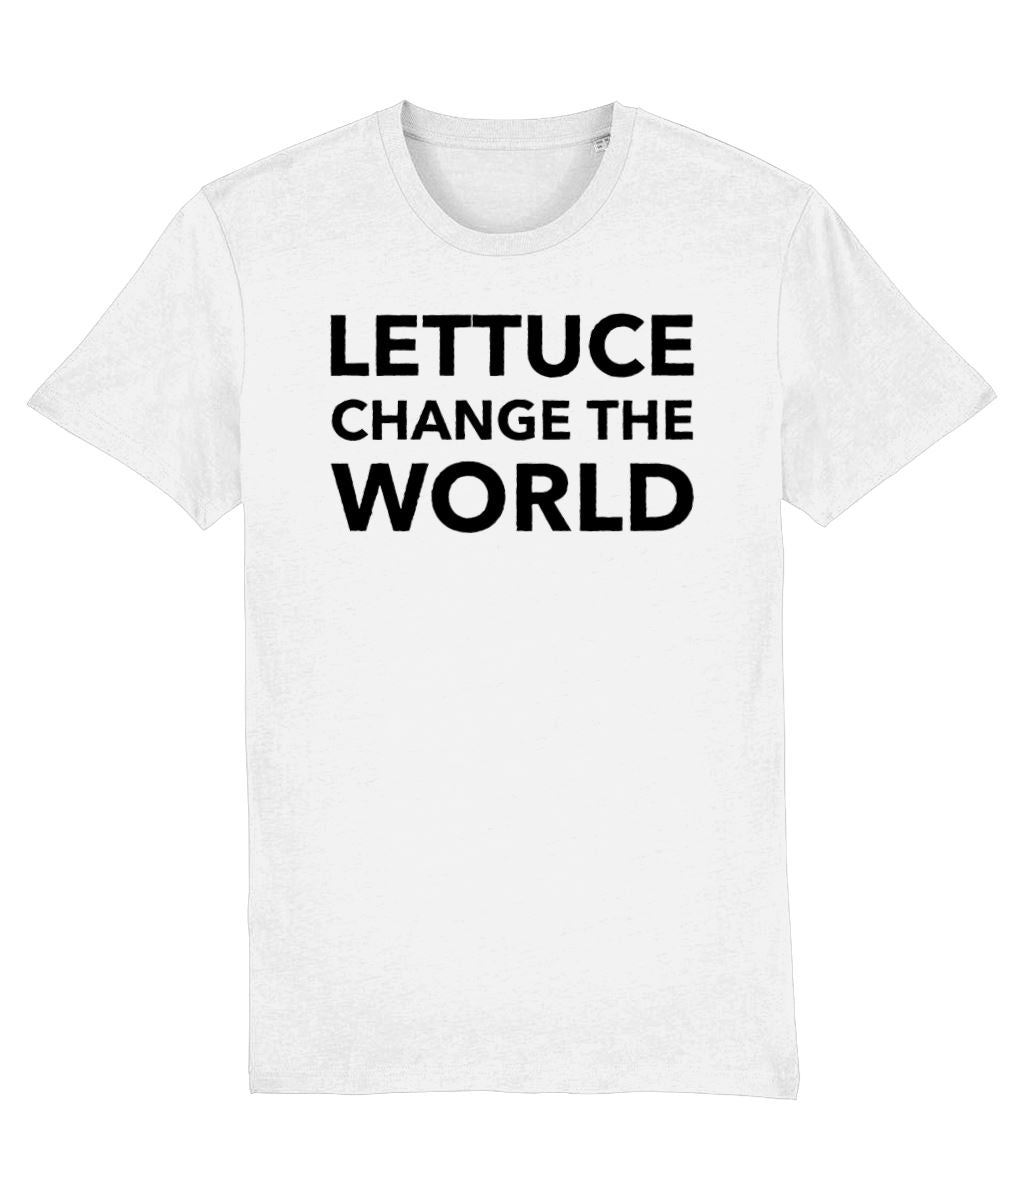 """Lettuce Change the World"" Vegan T-Shirt - 100% Organic Cotton (Unisex) Clothing Vegan Original White XX-Small"